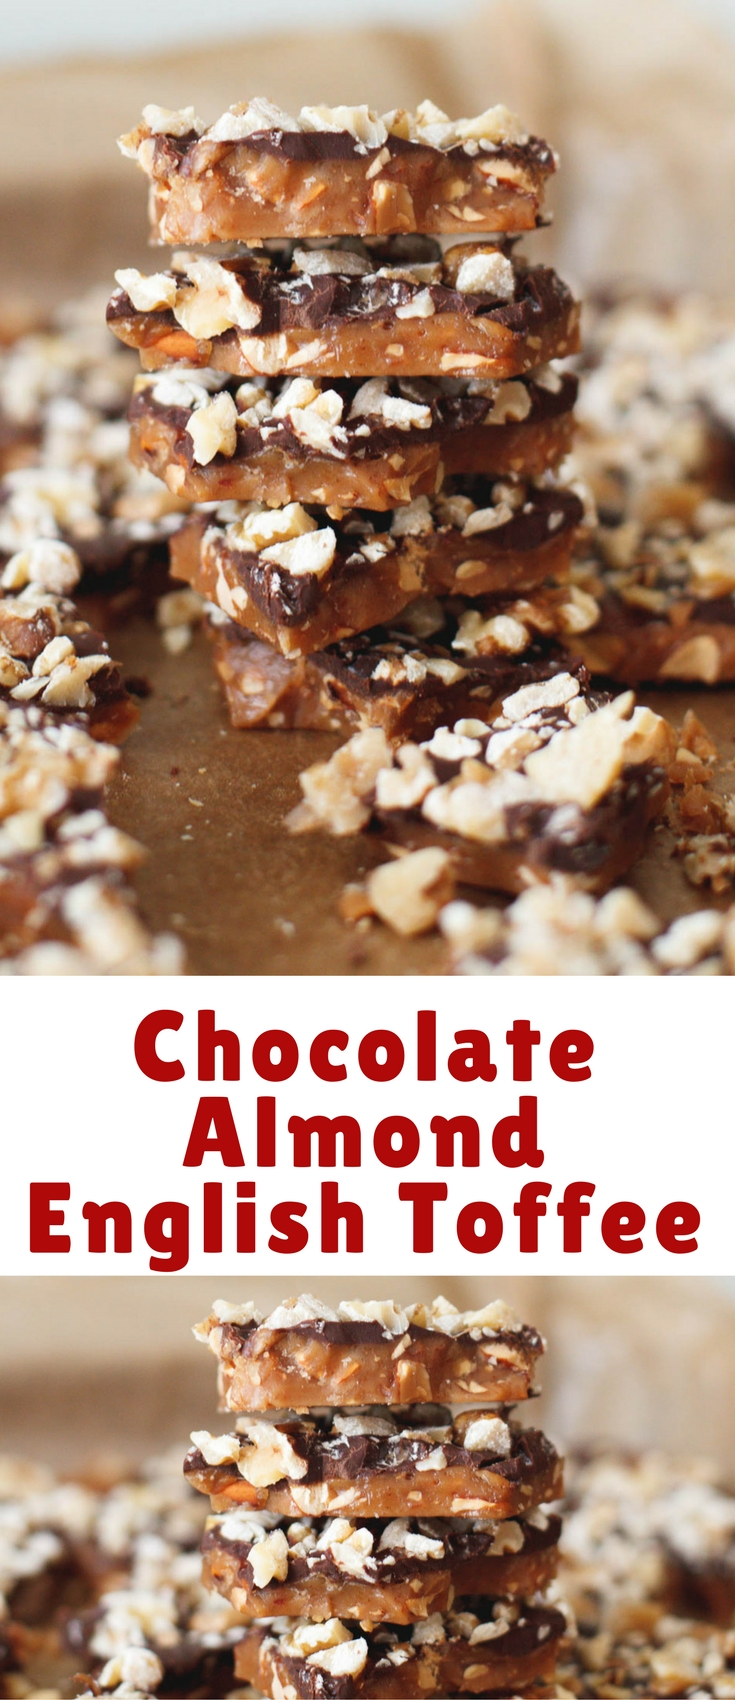 This recipe is a highly addicting, deeply buttery toffee crunch with roasted almonds scattered throughout and a layer of chocolate and walnuts on top.